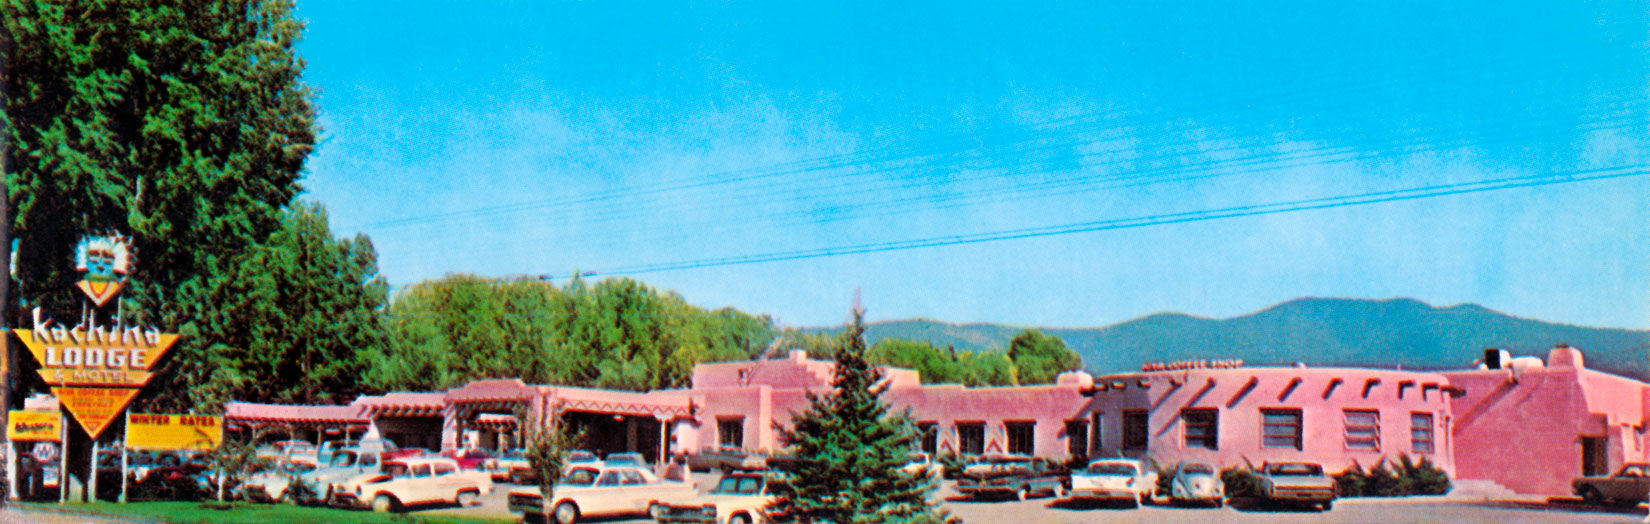 Kachina Lodge and Motel in Taos, New Mexico 1957 Imperial